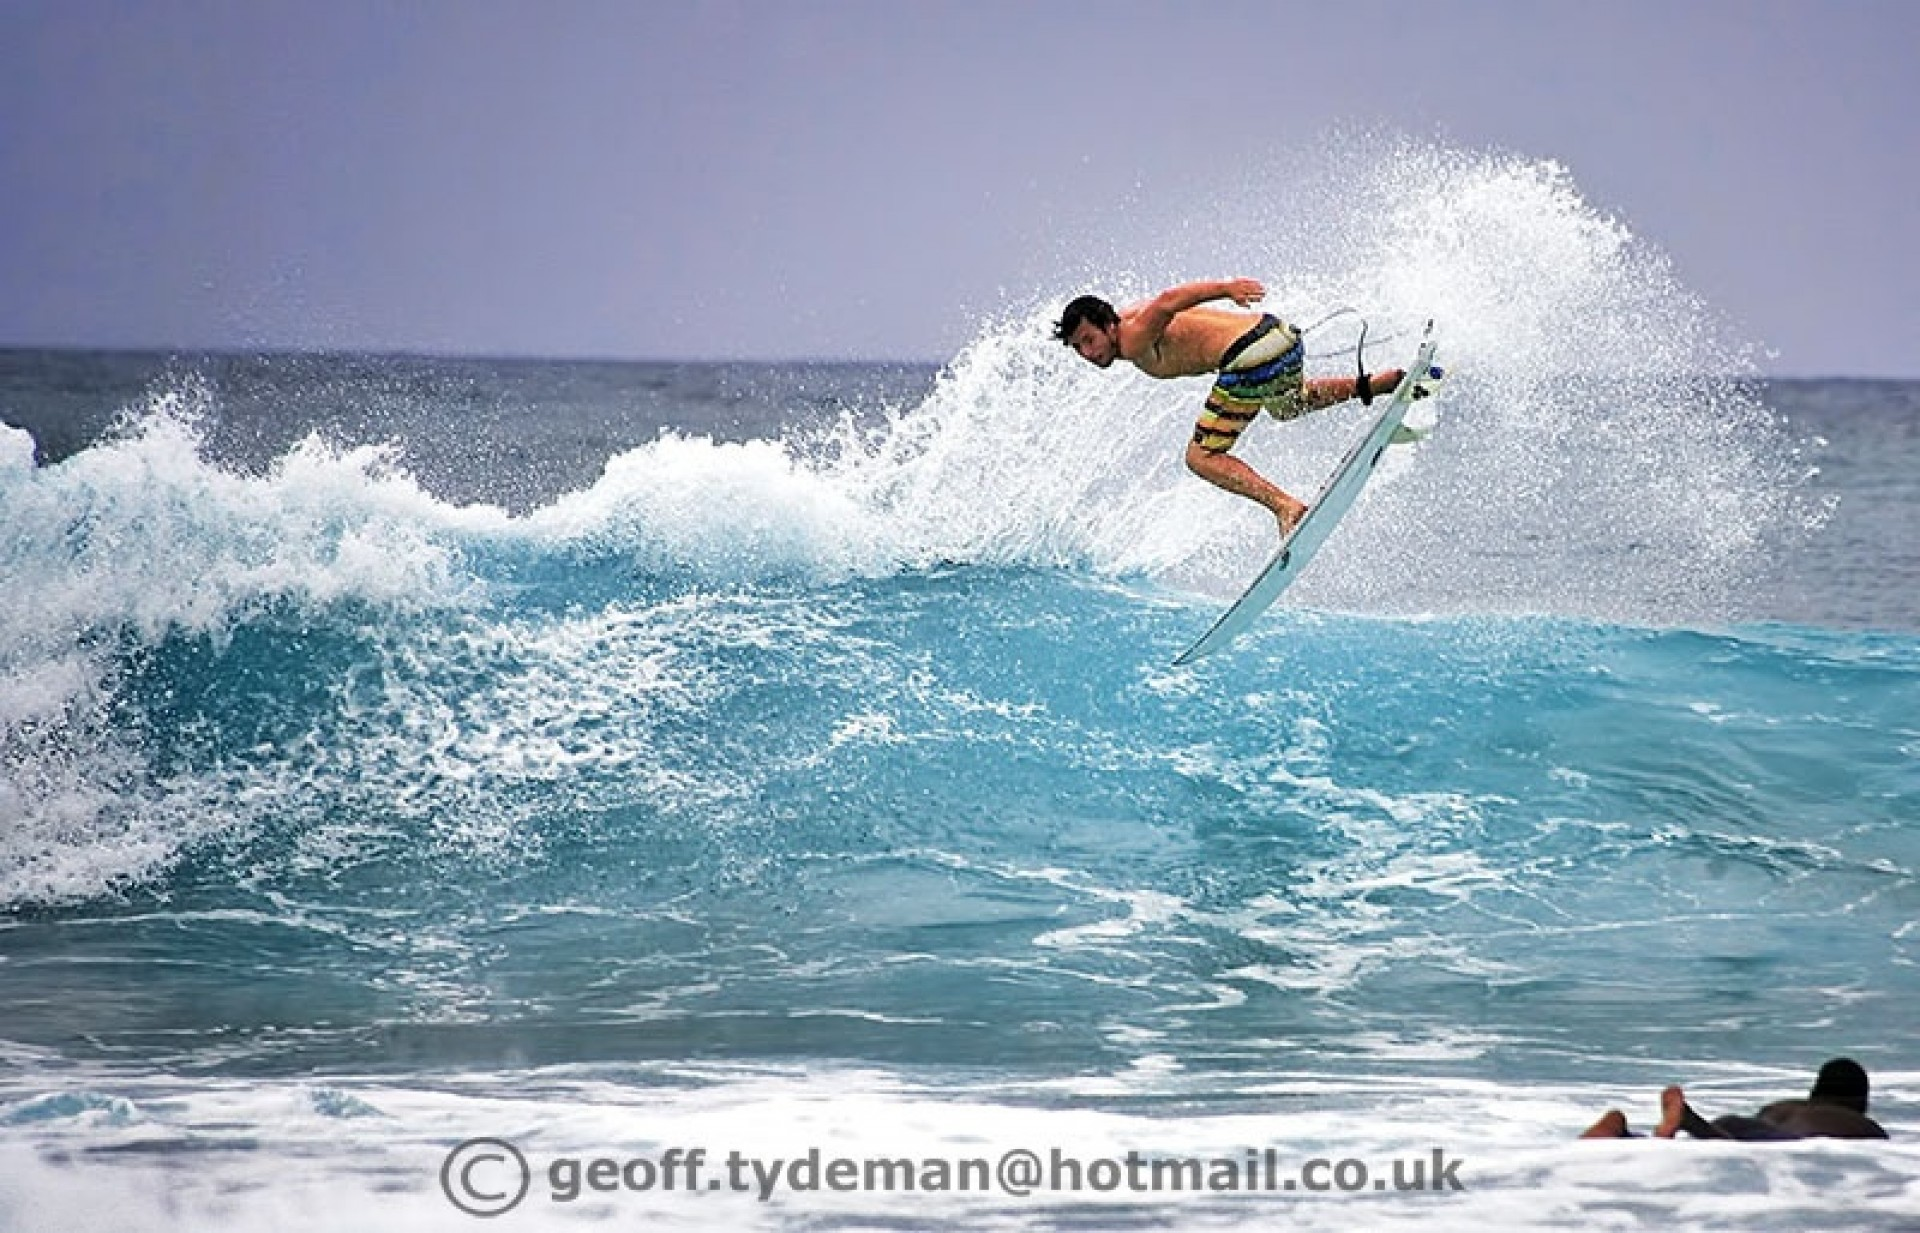 Geoff Tydeman's photo of South Coast